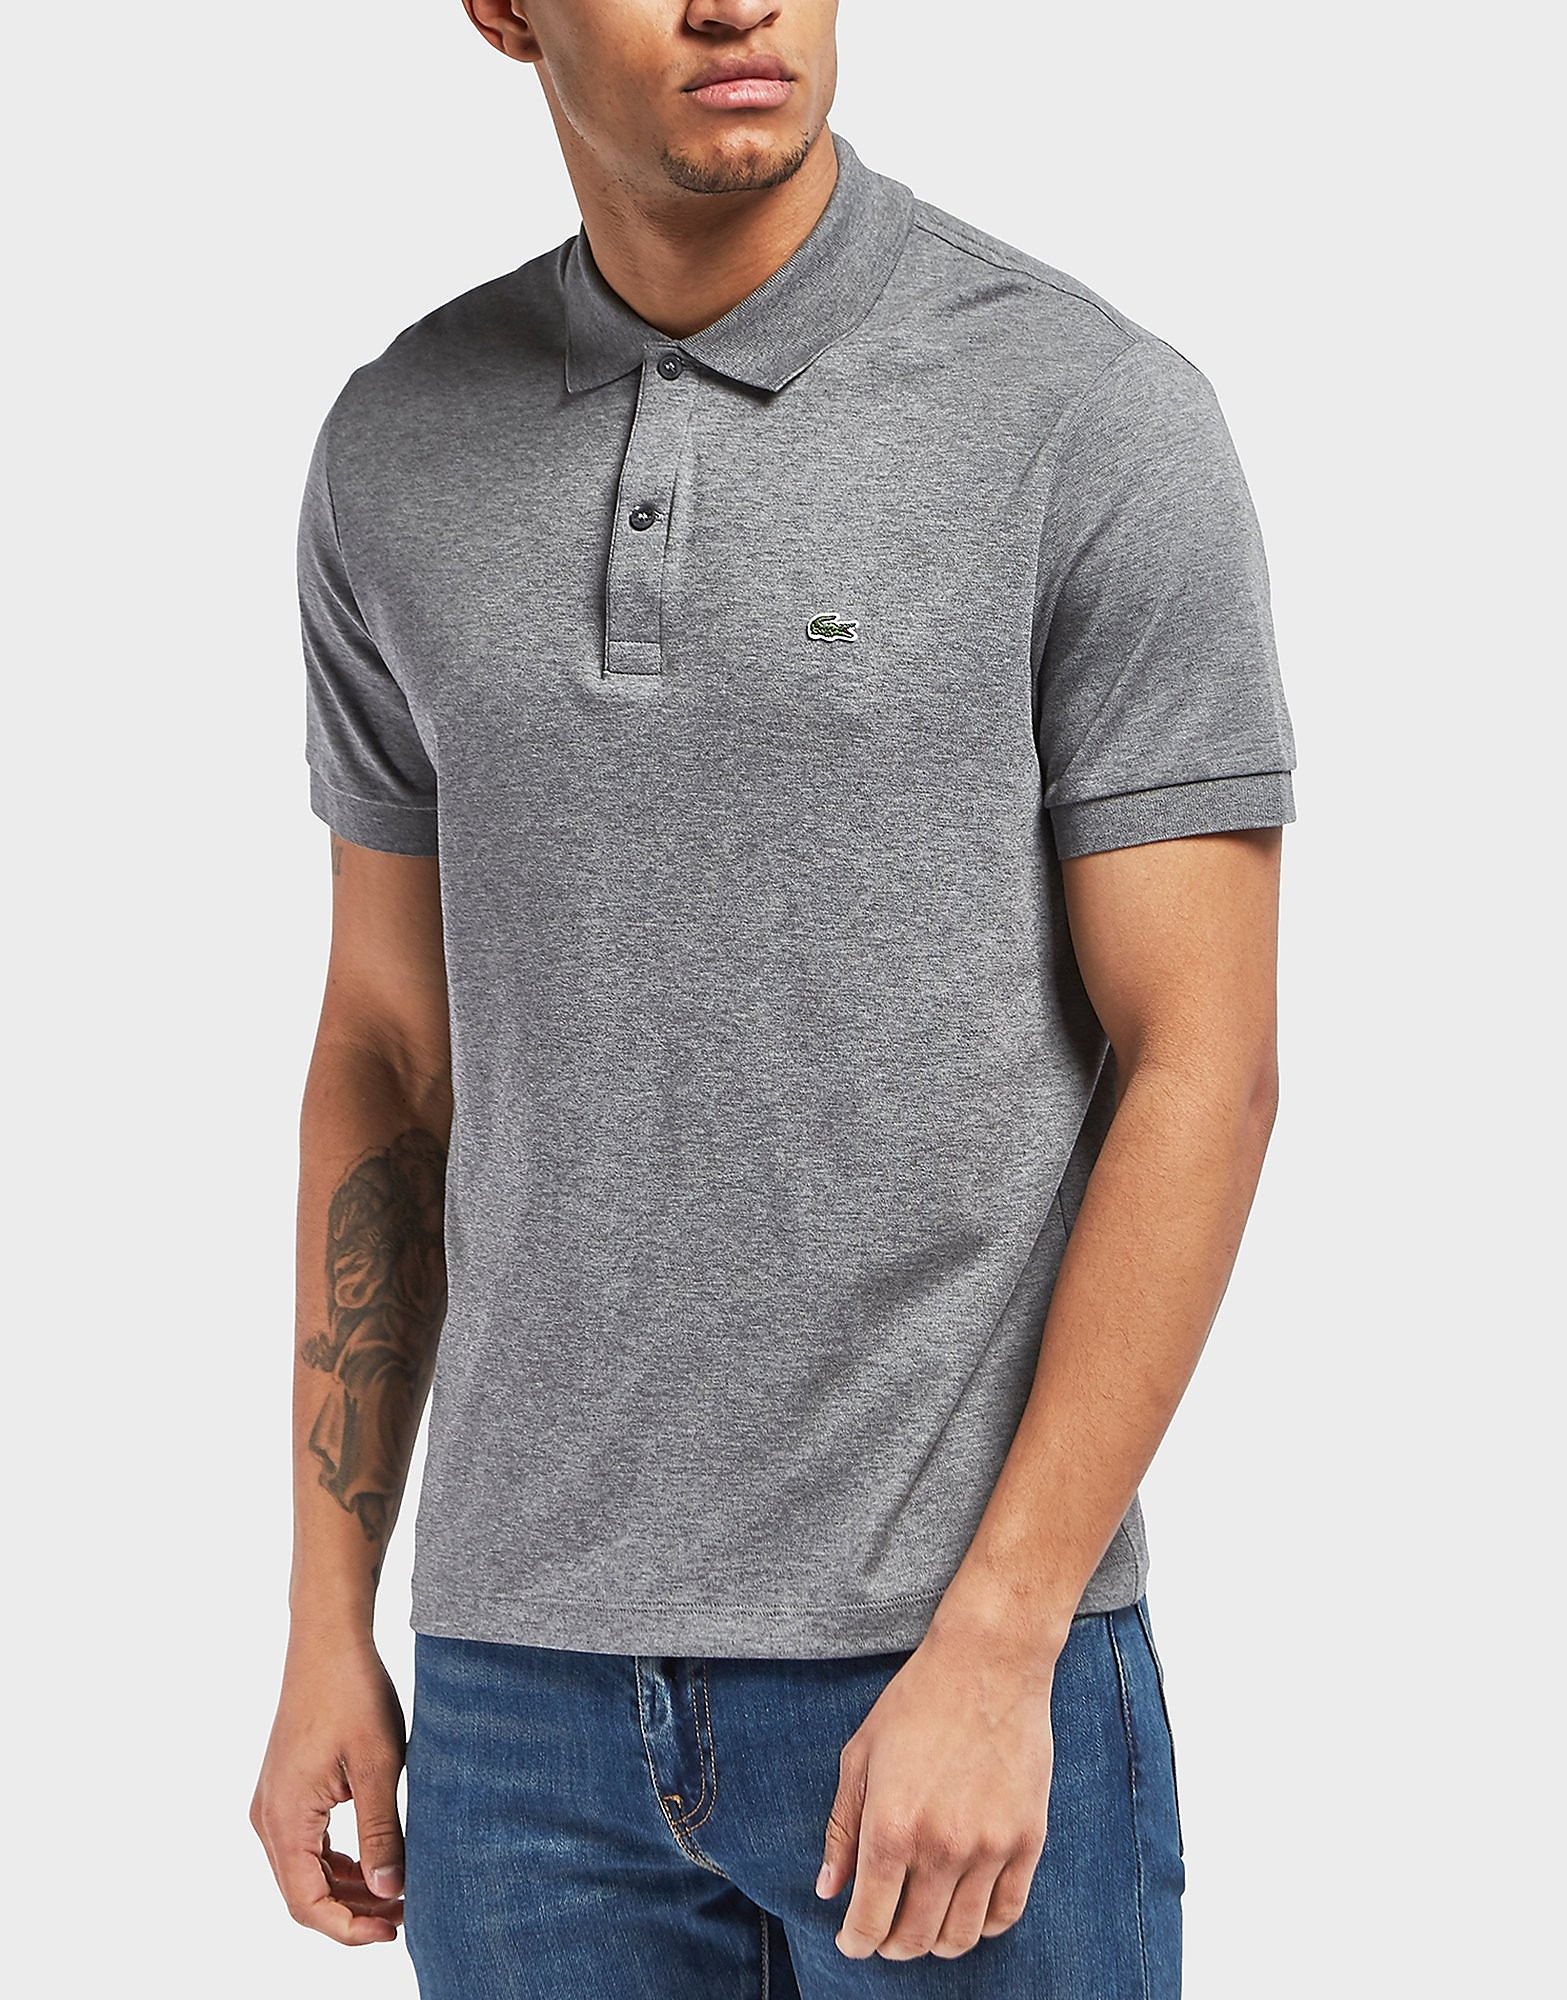 Lacoste Regular Jersey Short Sleeve Polo Shirt